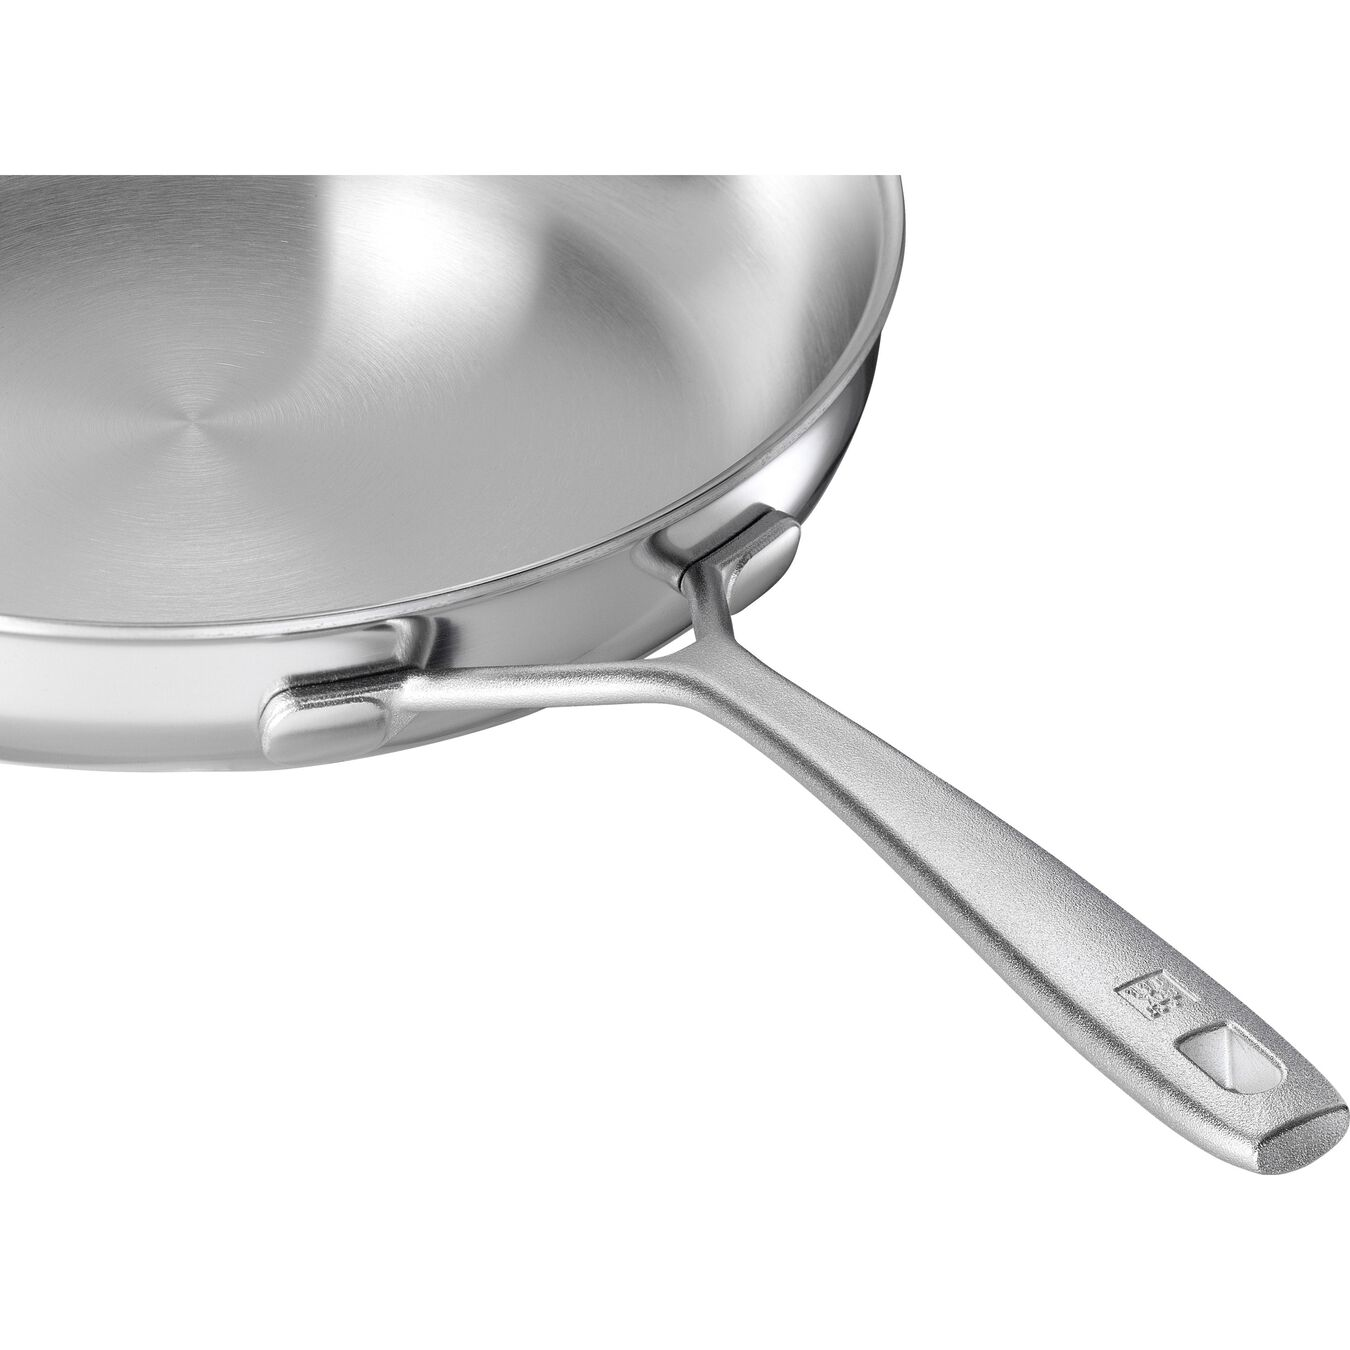 28 cm / 11 inch 18/10 Stainless Steel Frying pan,,large 5